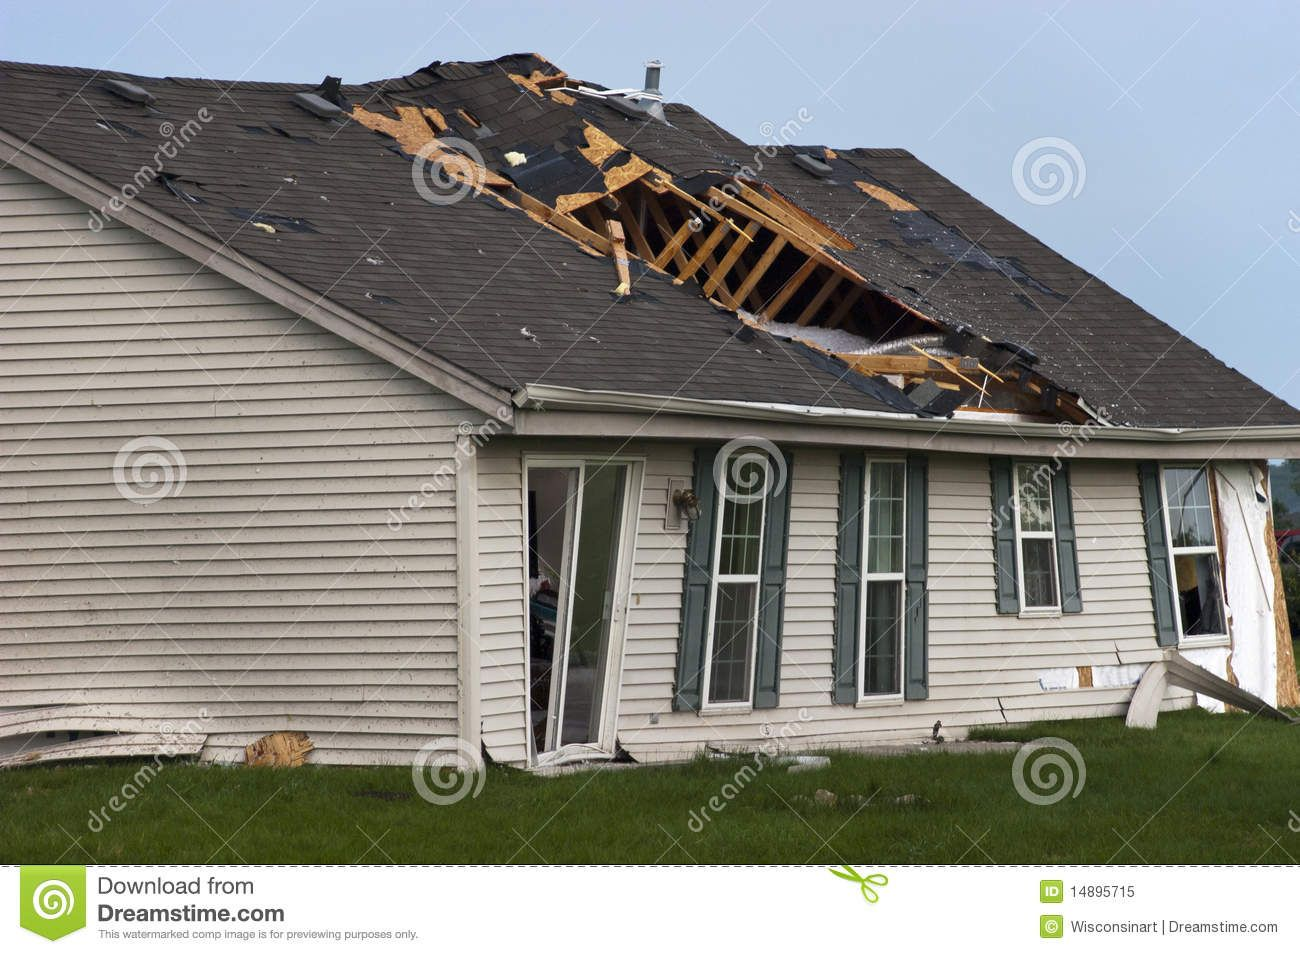 South Florida Wind Damage Insurance Claim Assistance Roofing Home Insurance Home Maintenance